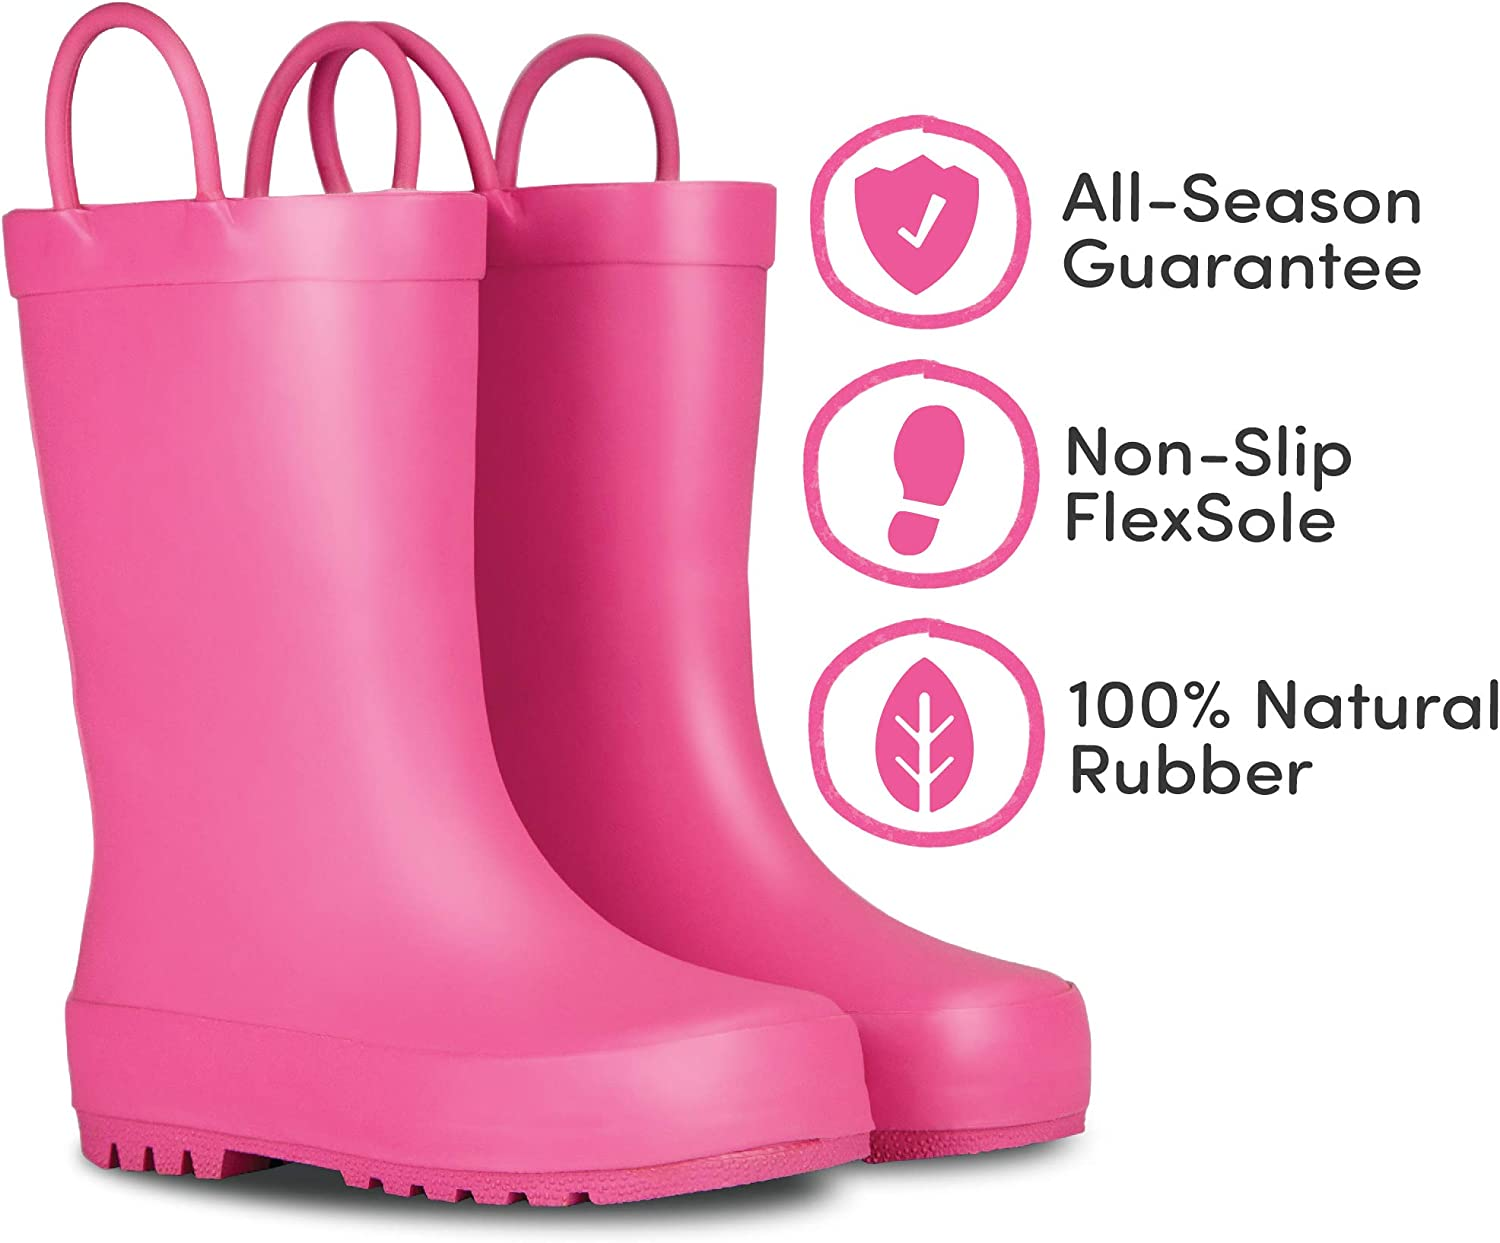 Premium Natural Rubber Rain Boots with Matte Finish for Toddlers and Kids LONECONE Elementary Collection